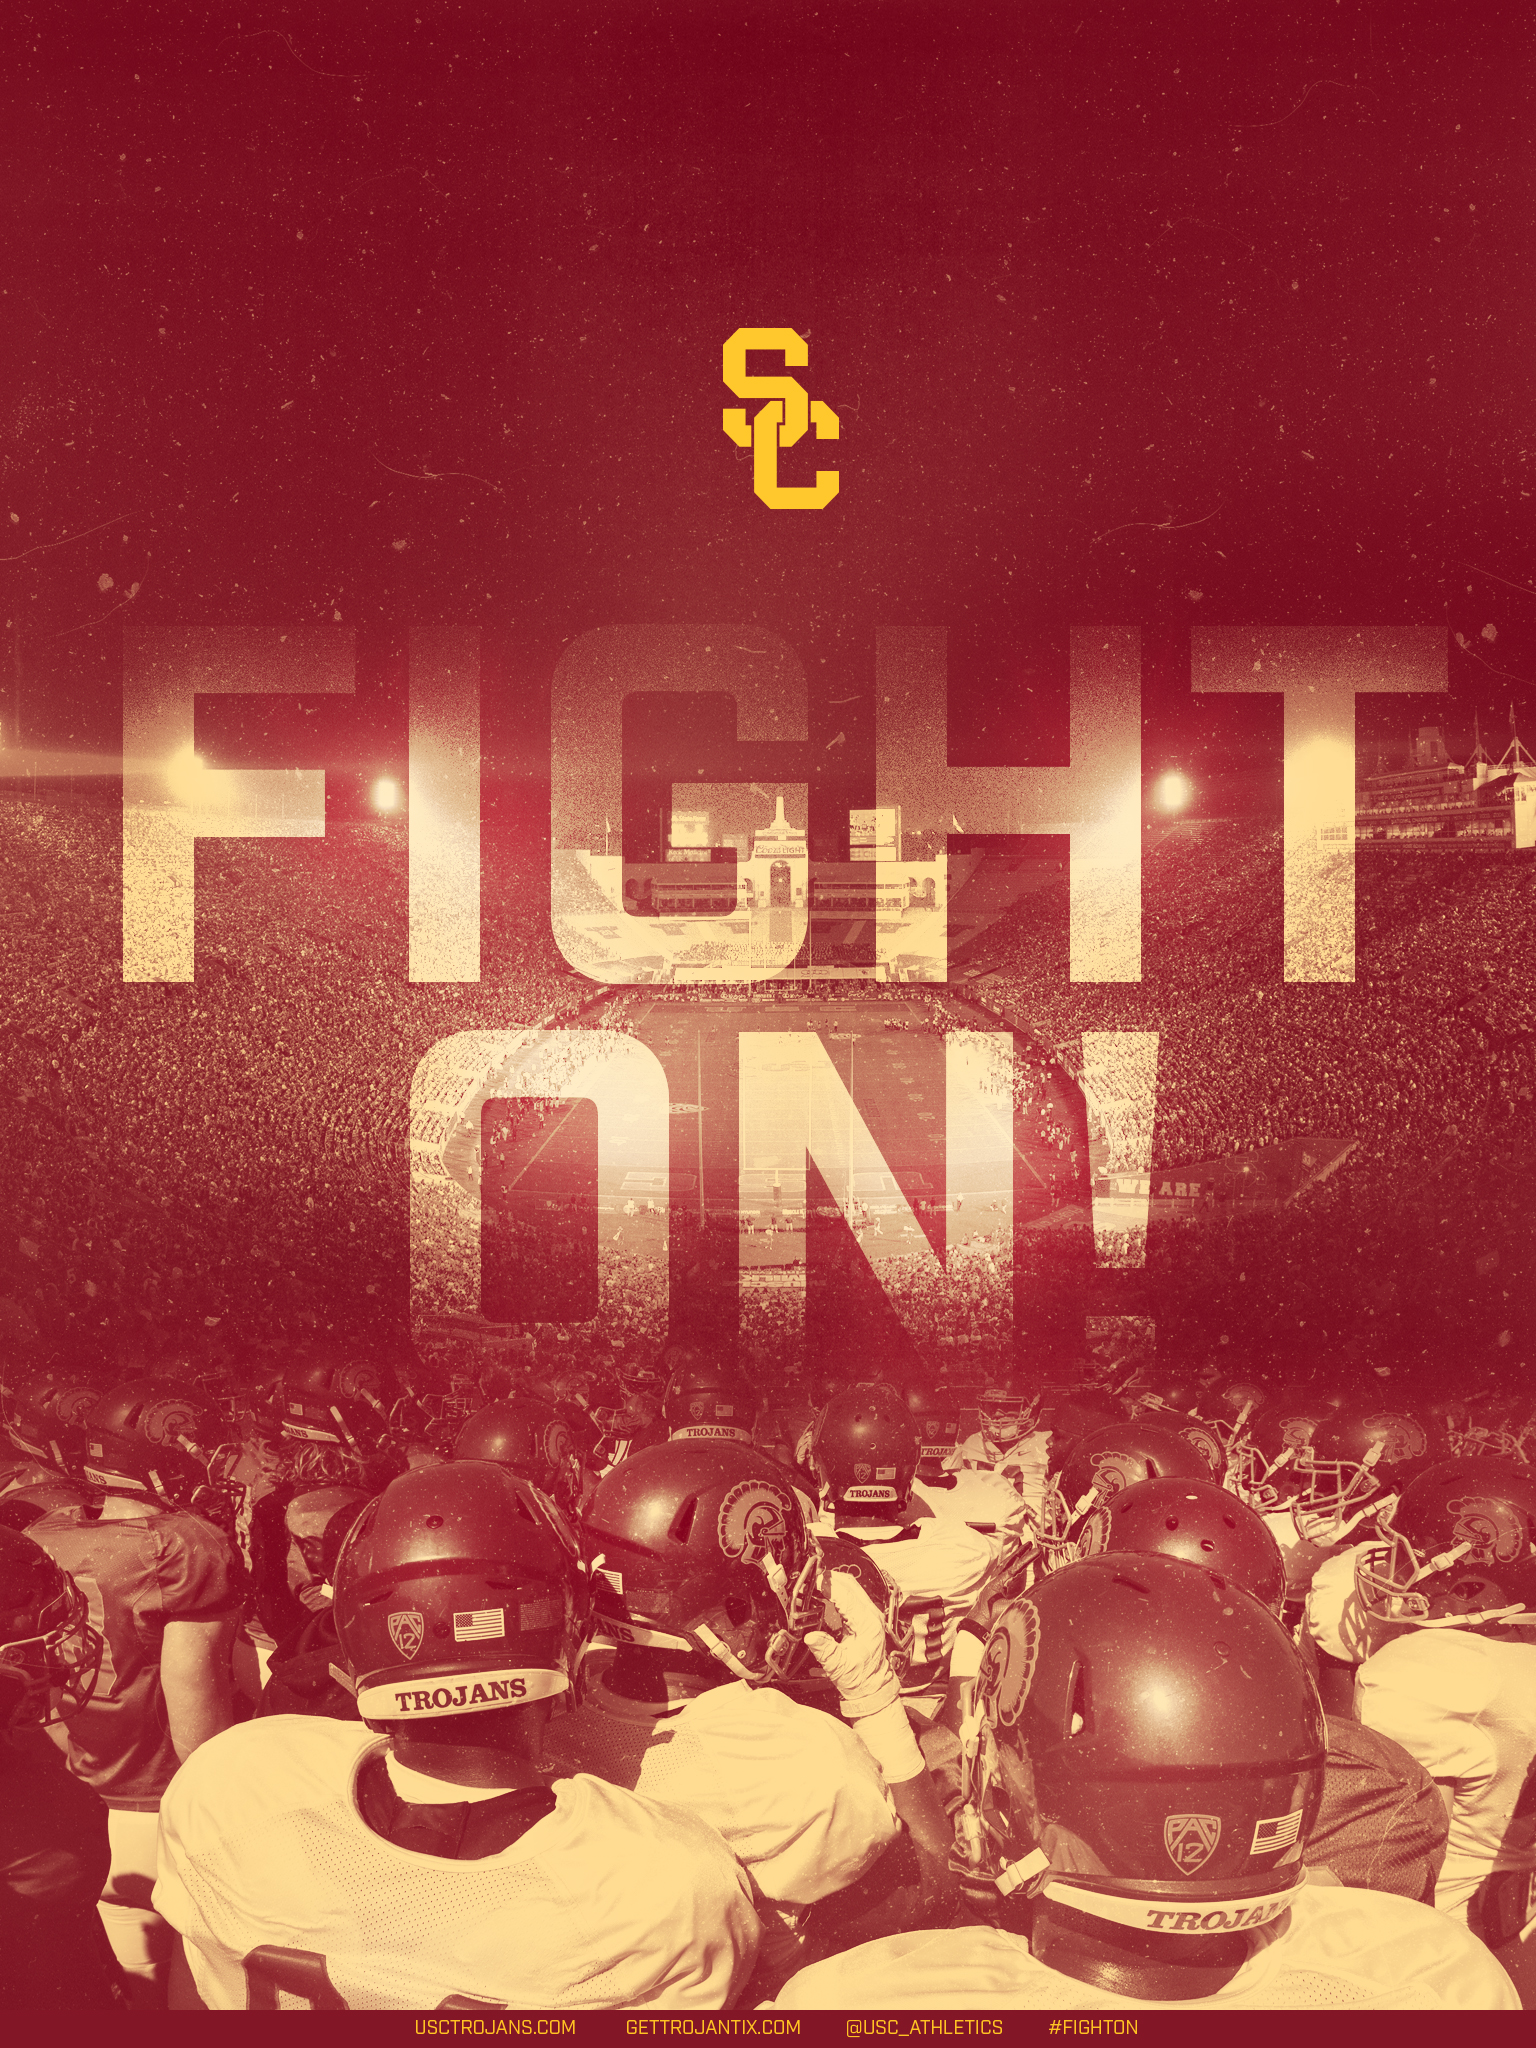 Iphone Usc Trojans Football Wallpaper | Full HD Pictures